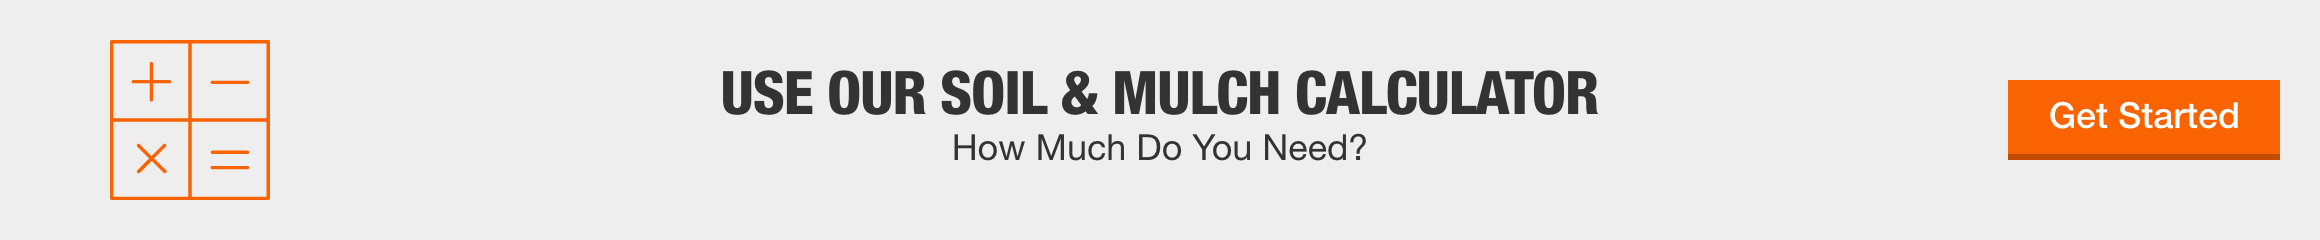 USE OUR SOIL & MULCH CALCULATOR - How much  do you need? Get Started